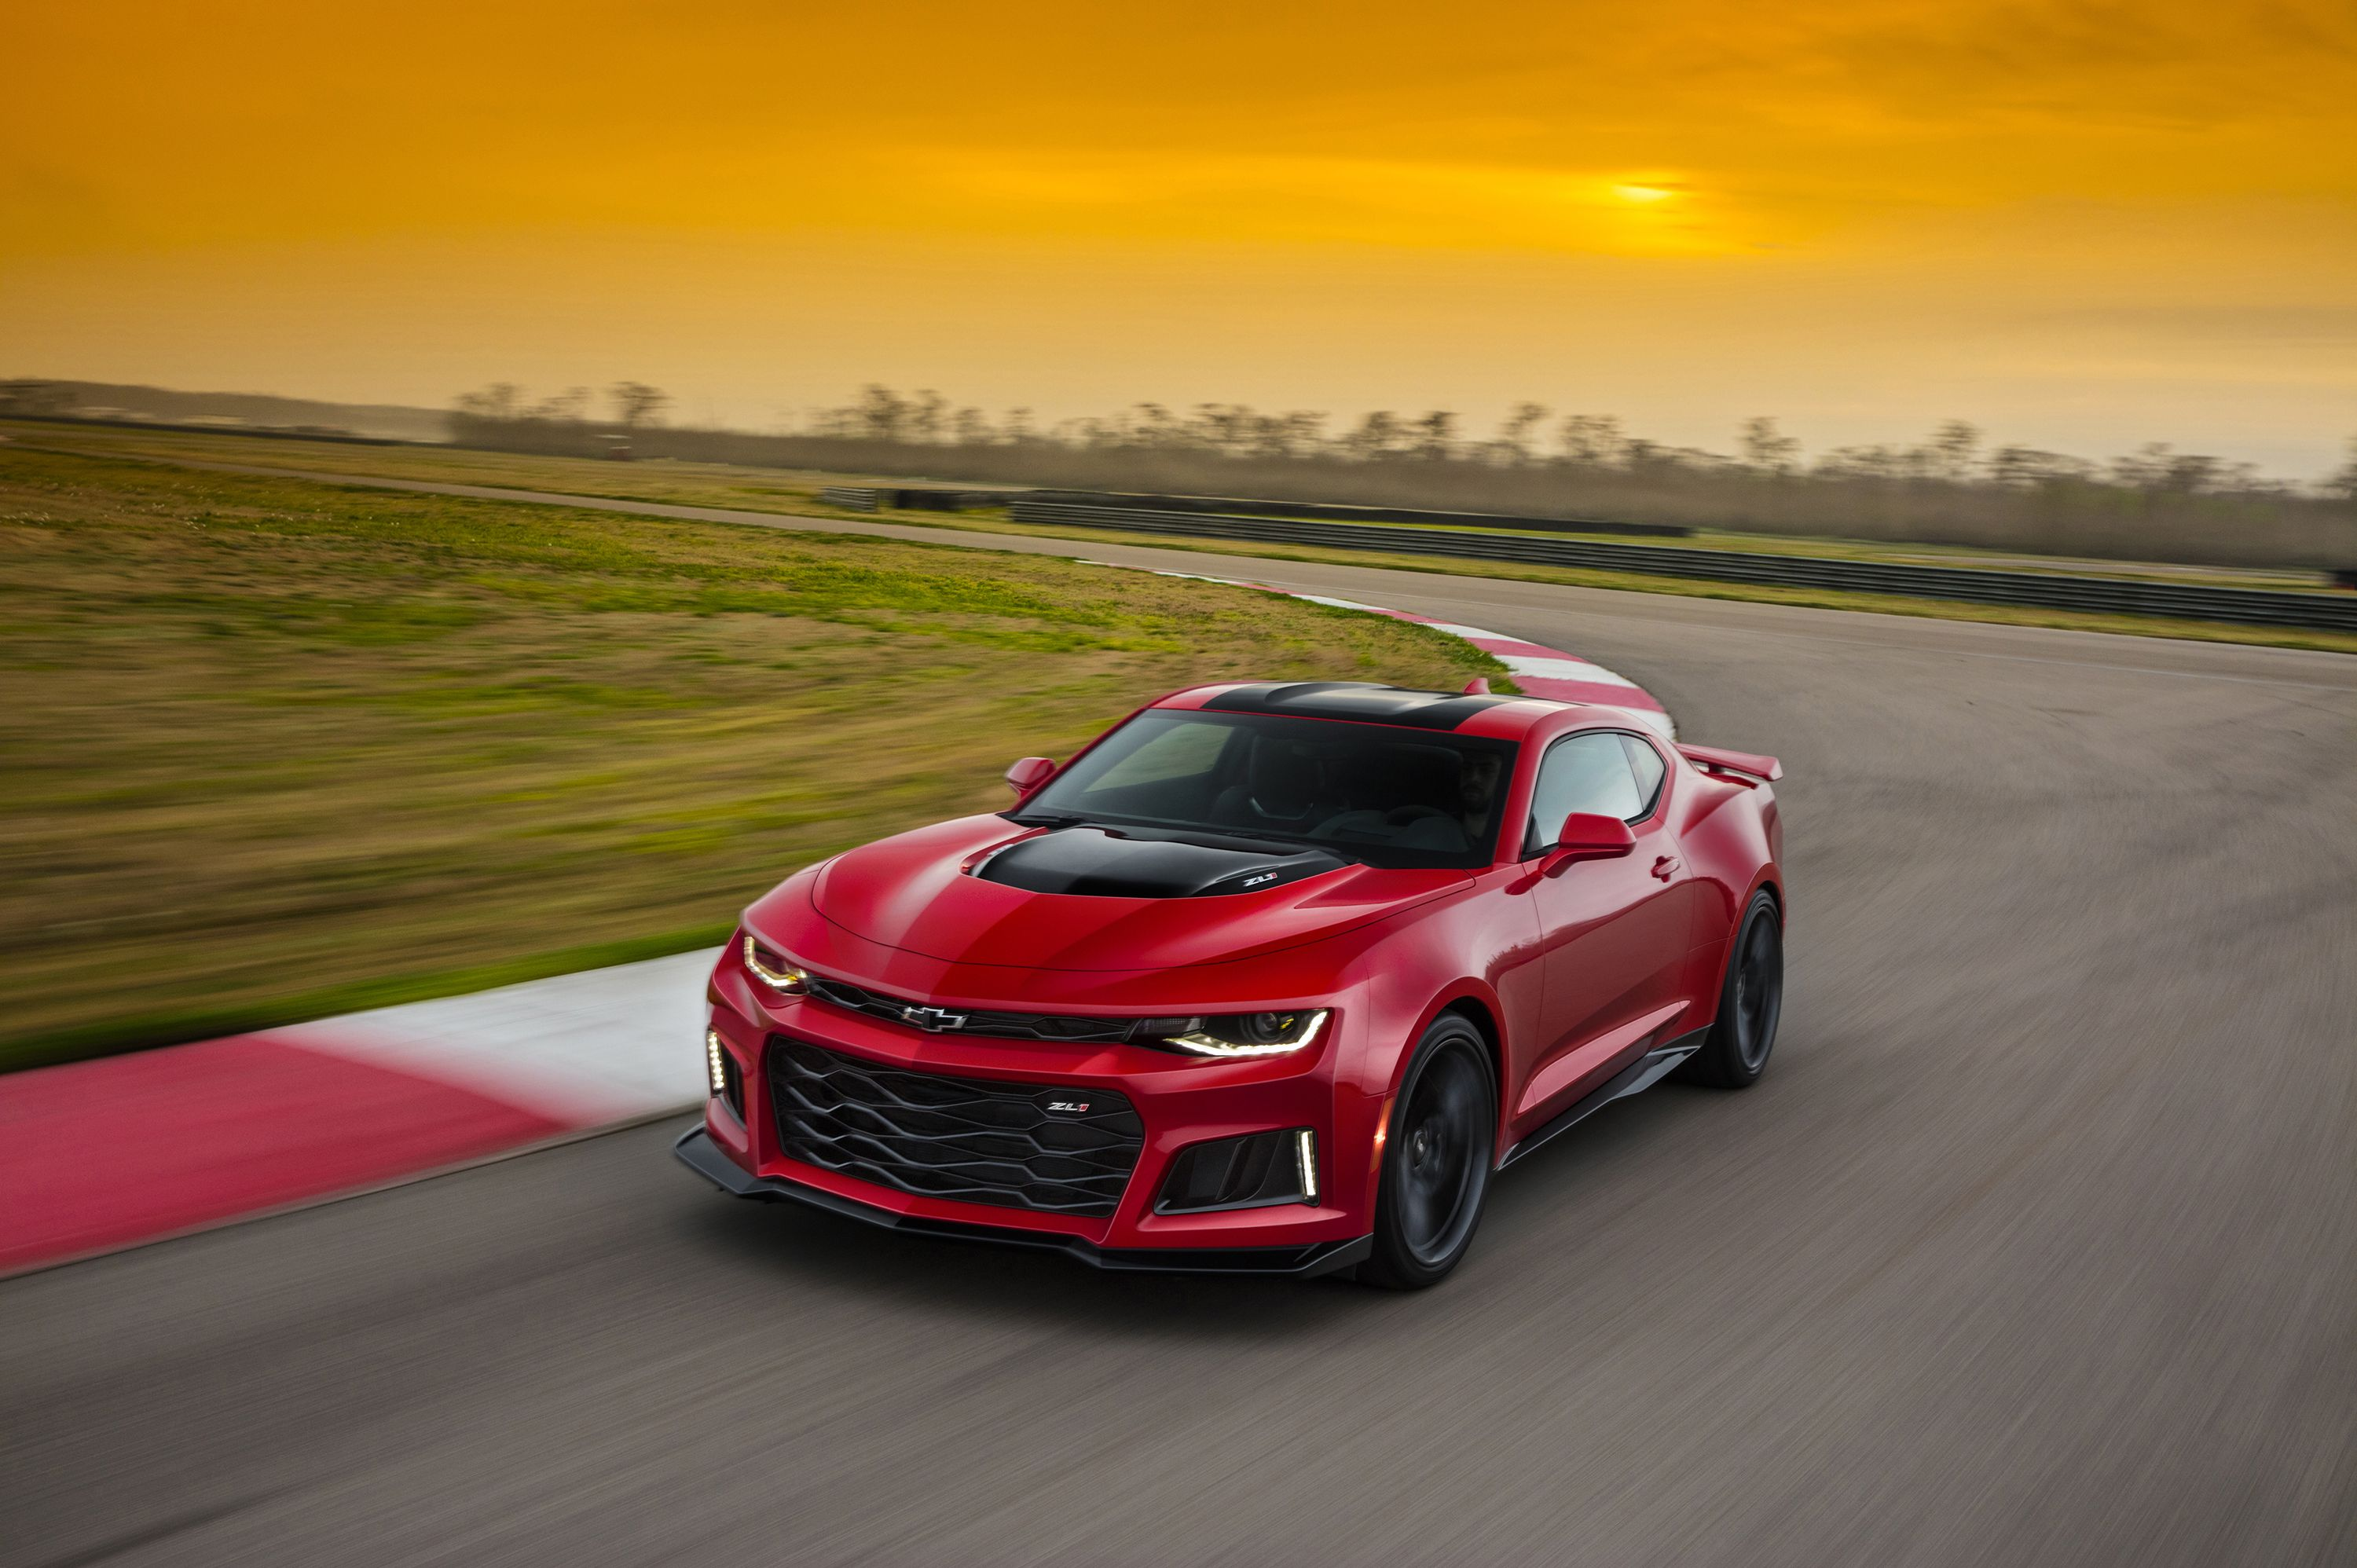 Ordinaire The 2017 Camaro Will Have 640 Supercharged Horsepower Under The Hood, And  Your Choice Of A Close Ratio Manual Or Lightning Fast Auto.